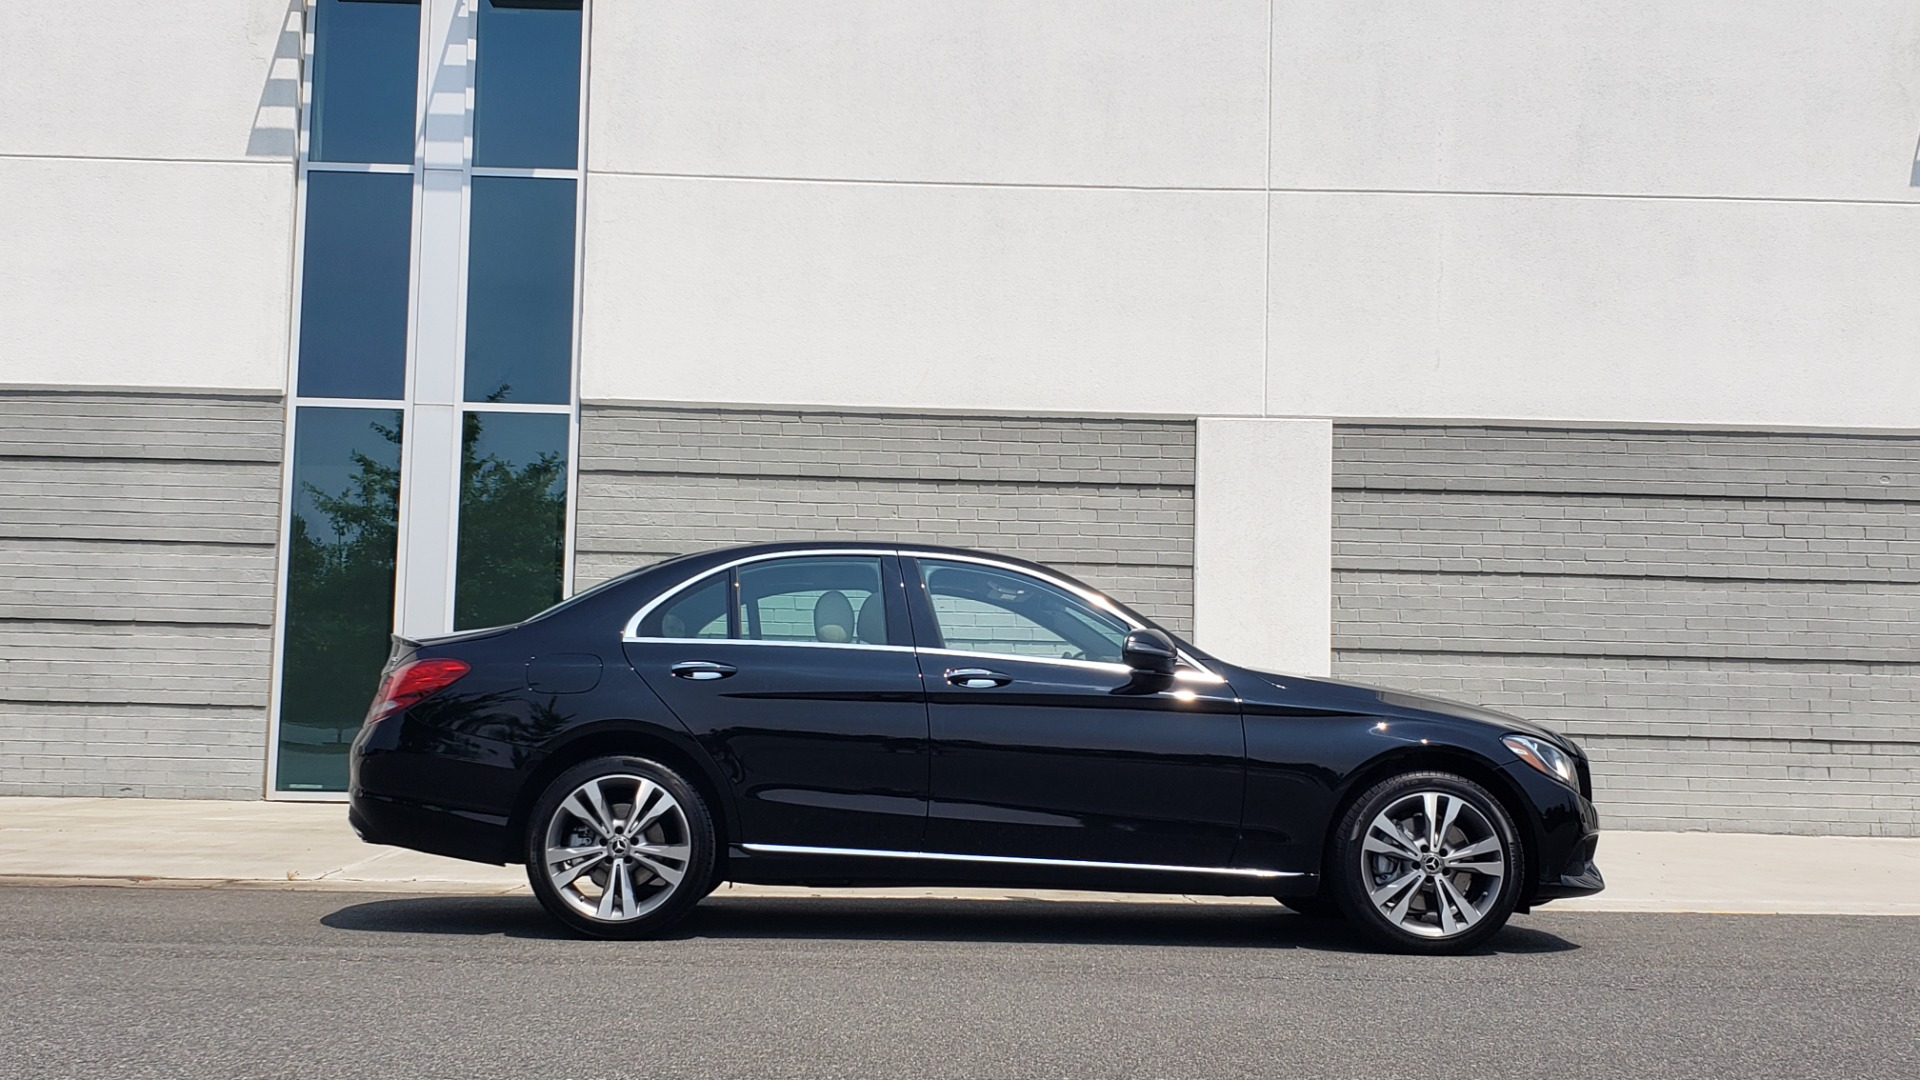 Used 2018 Mercedes-Benz C-CLASS C 300 4MATIC / PREMIUM / MULTIMEDIA / NAV / PANO-ROOF / BURMESTER for sale $30,495 at Formula Imports in Charlotte NC 28227 9